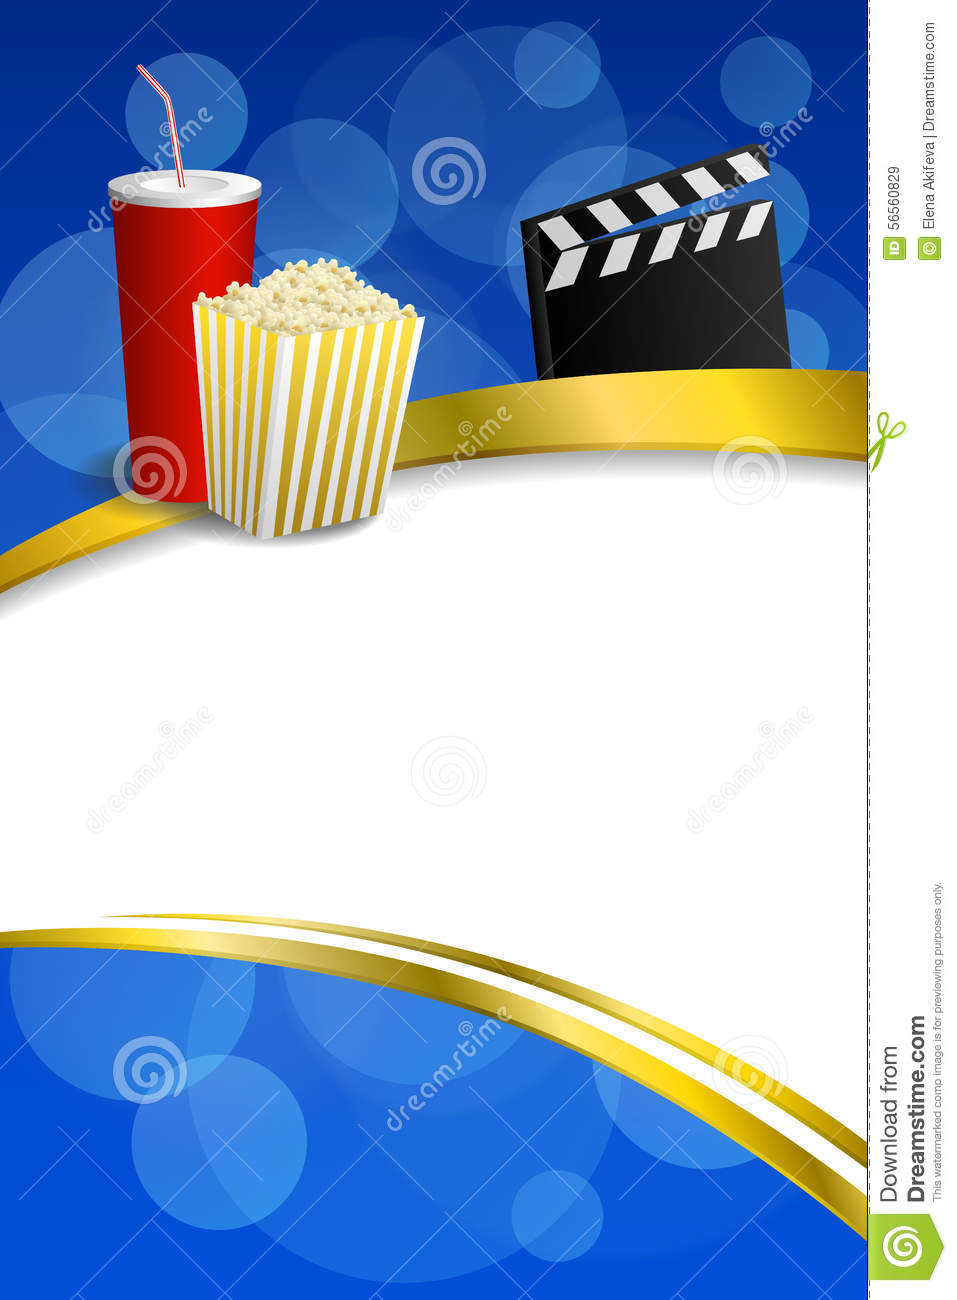 Background abstract blue gold red drink popcorn movie clapper board gold frame ribbon vertical illustration